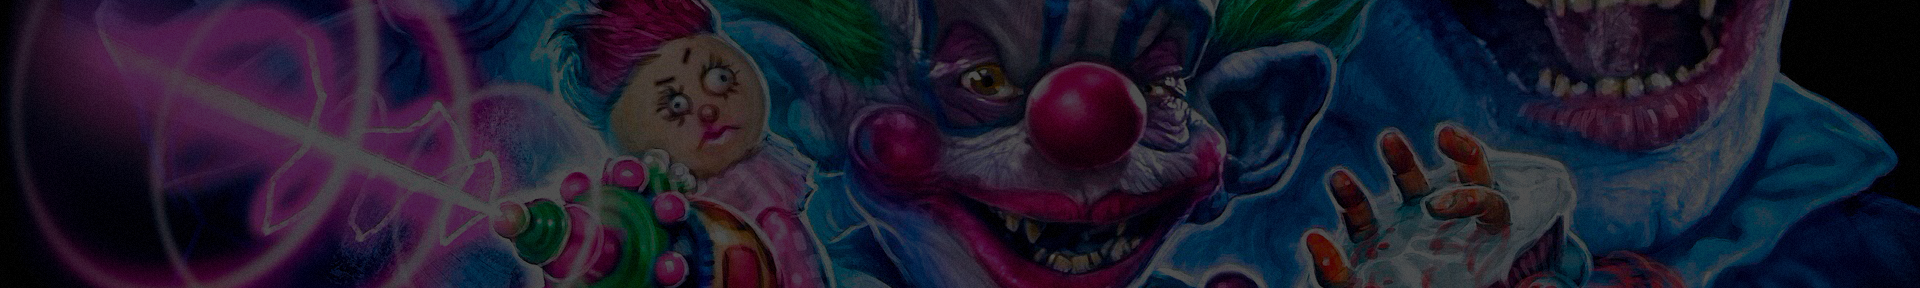 KILLER KLOWNS FROM OUTER SPACE new collection!